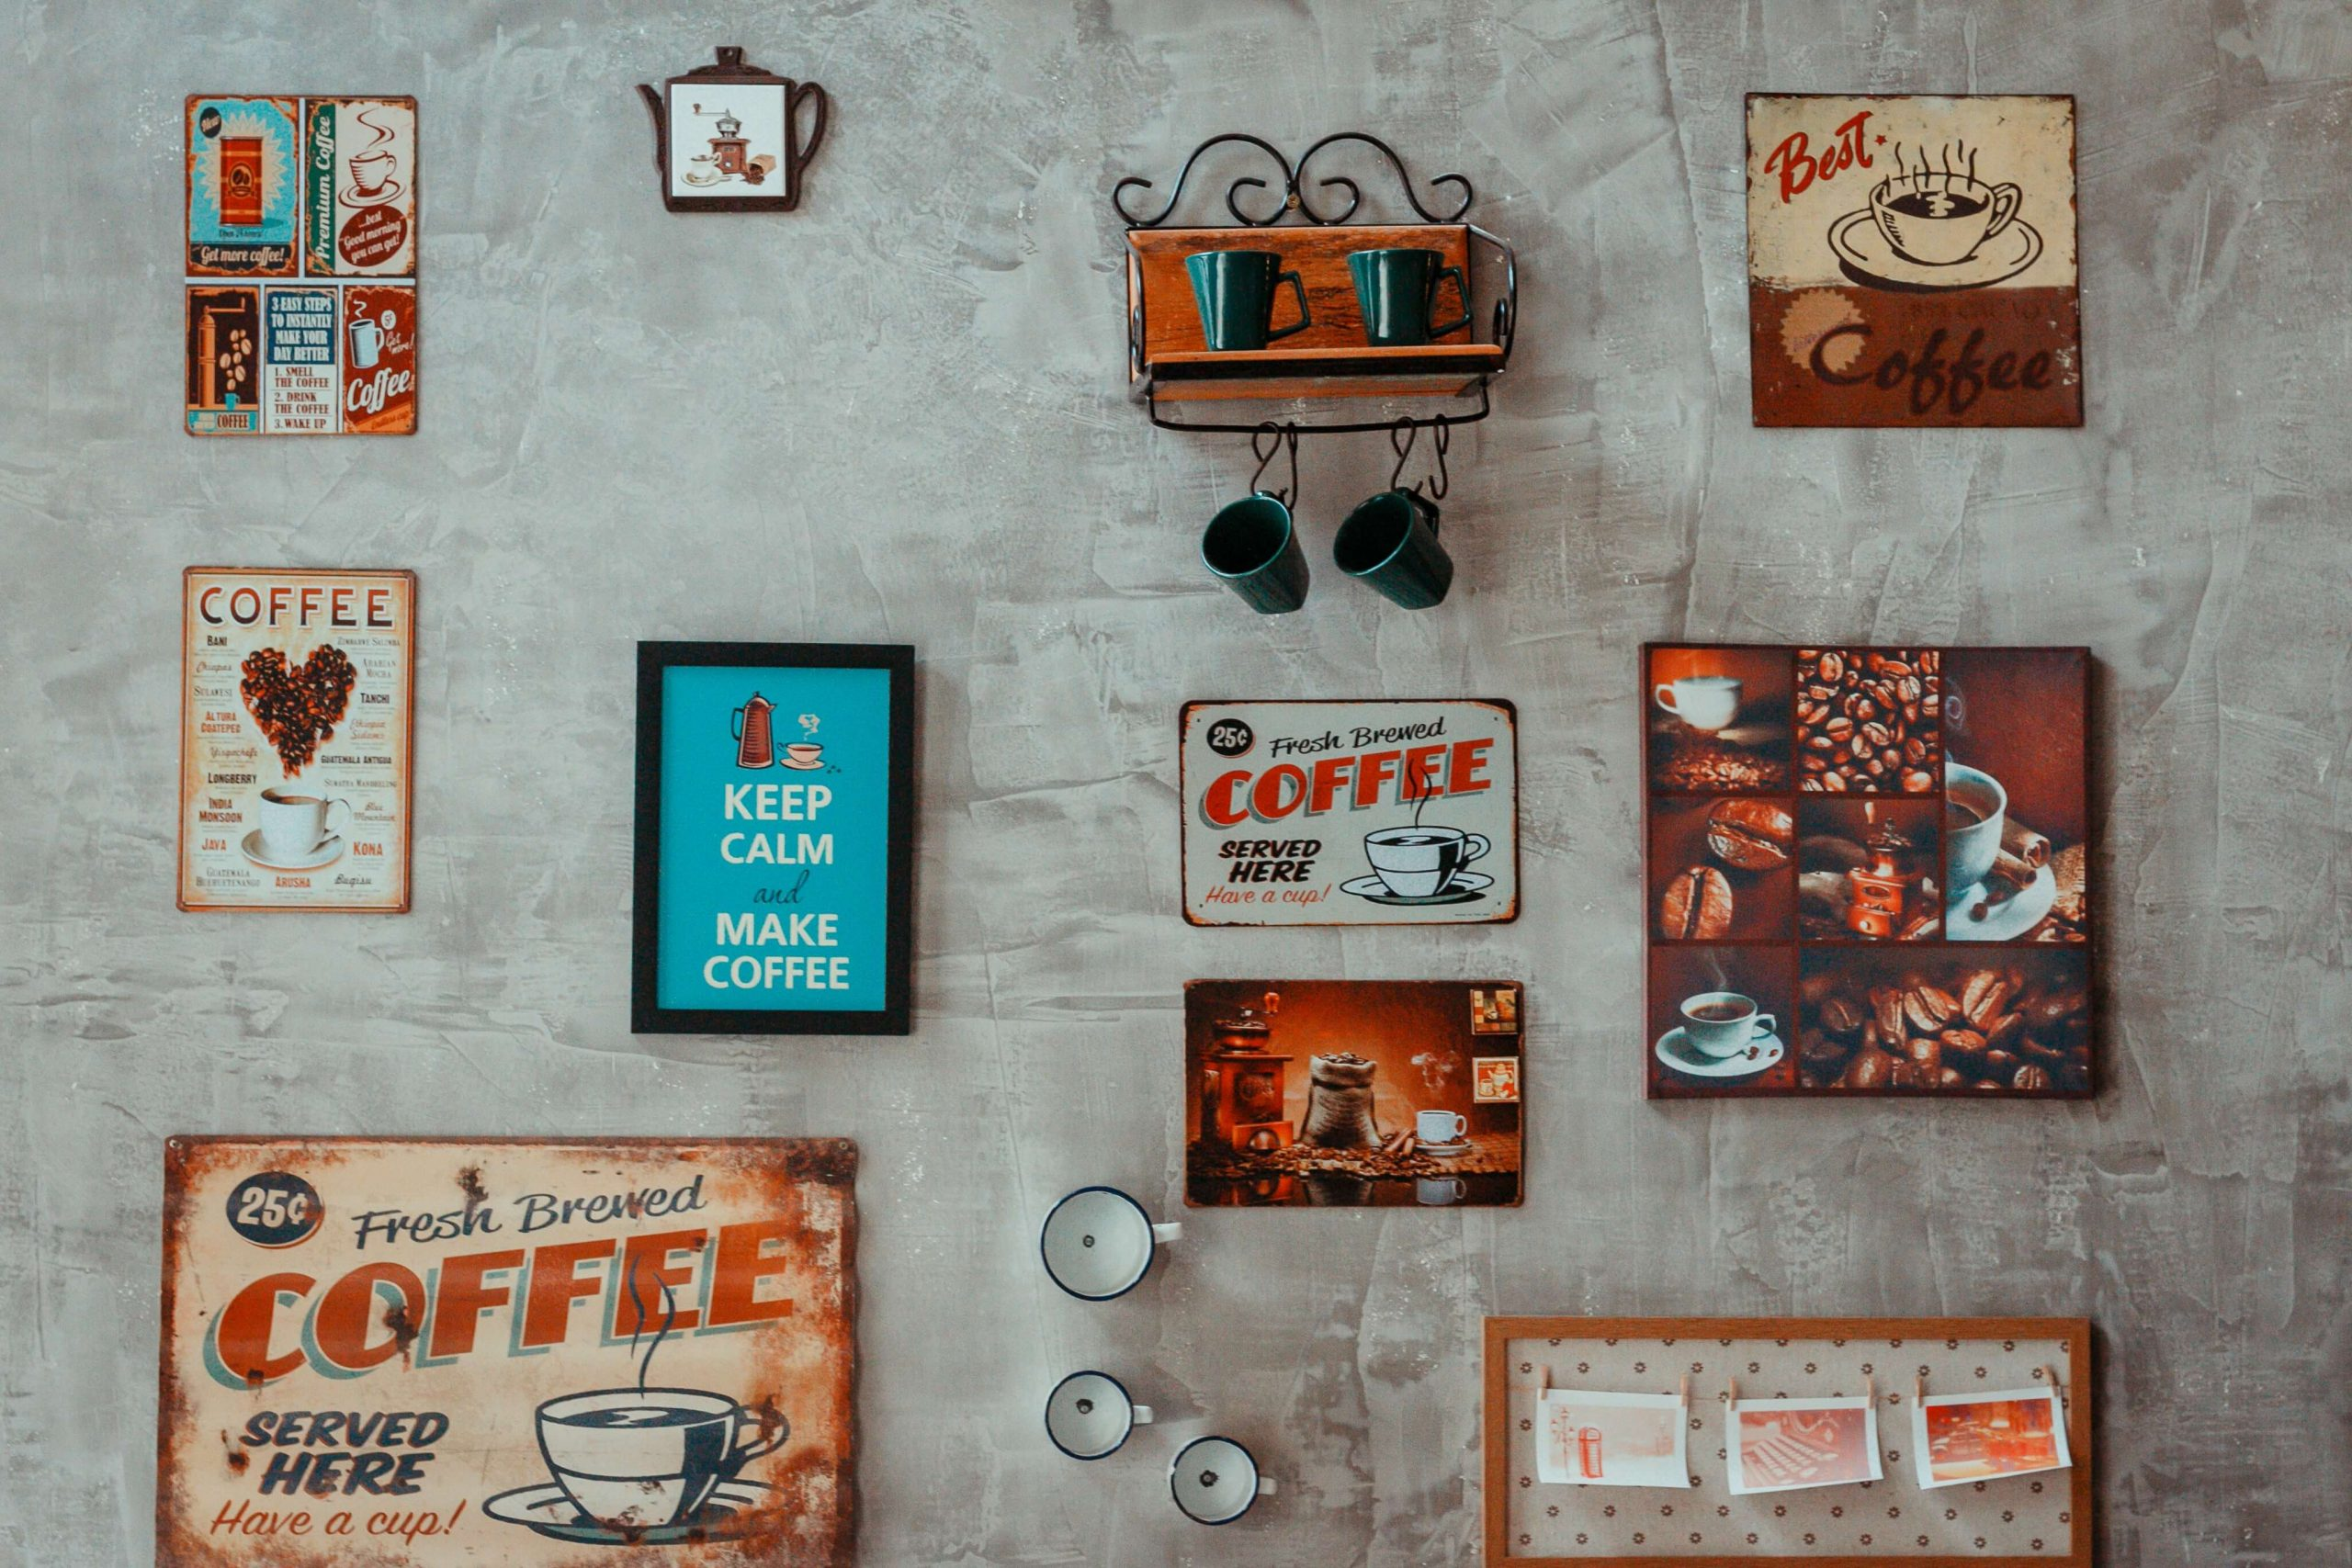 Selling coffee has severe competition; but it is still prospering thanks to increasing demands and the room for product development